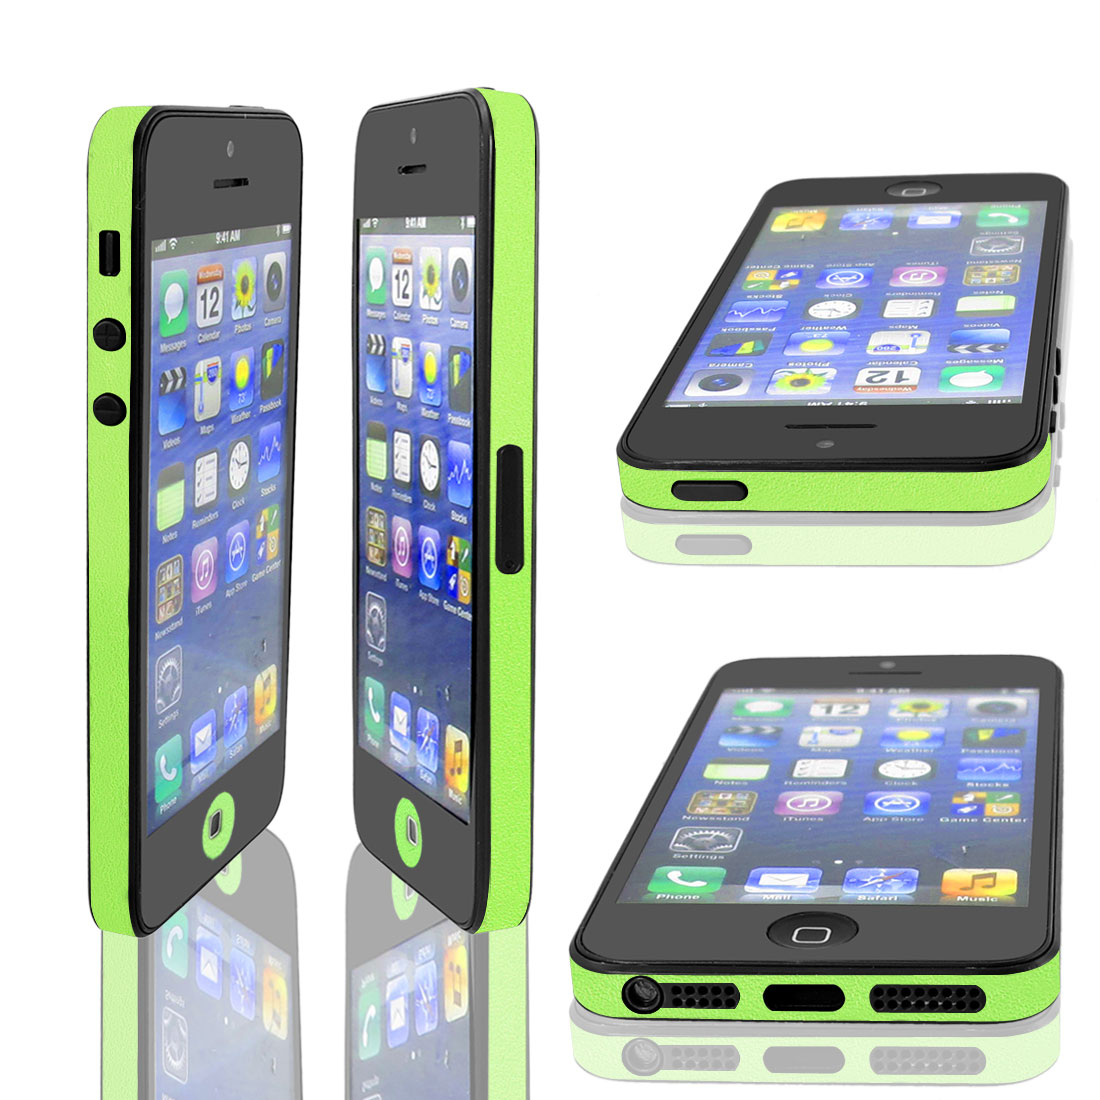 Green Bumper Side Edge Skin Decal Sticker for Apple iPhone 5 5G 5TH